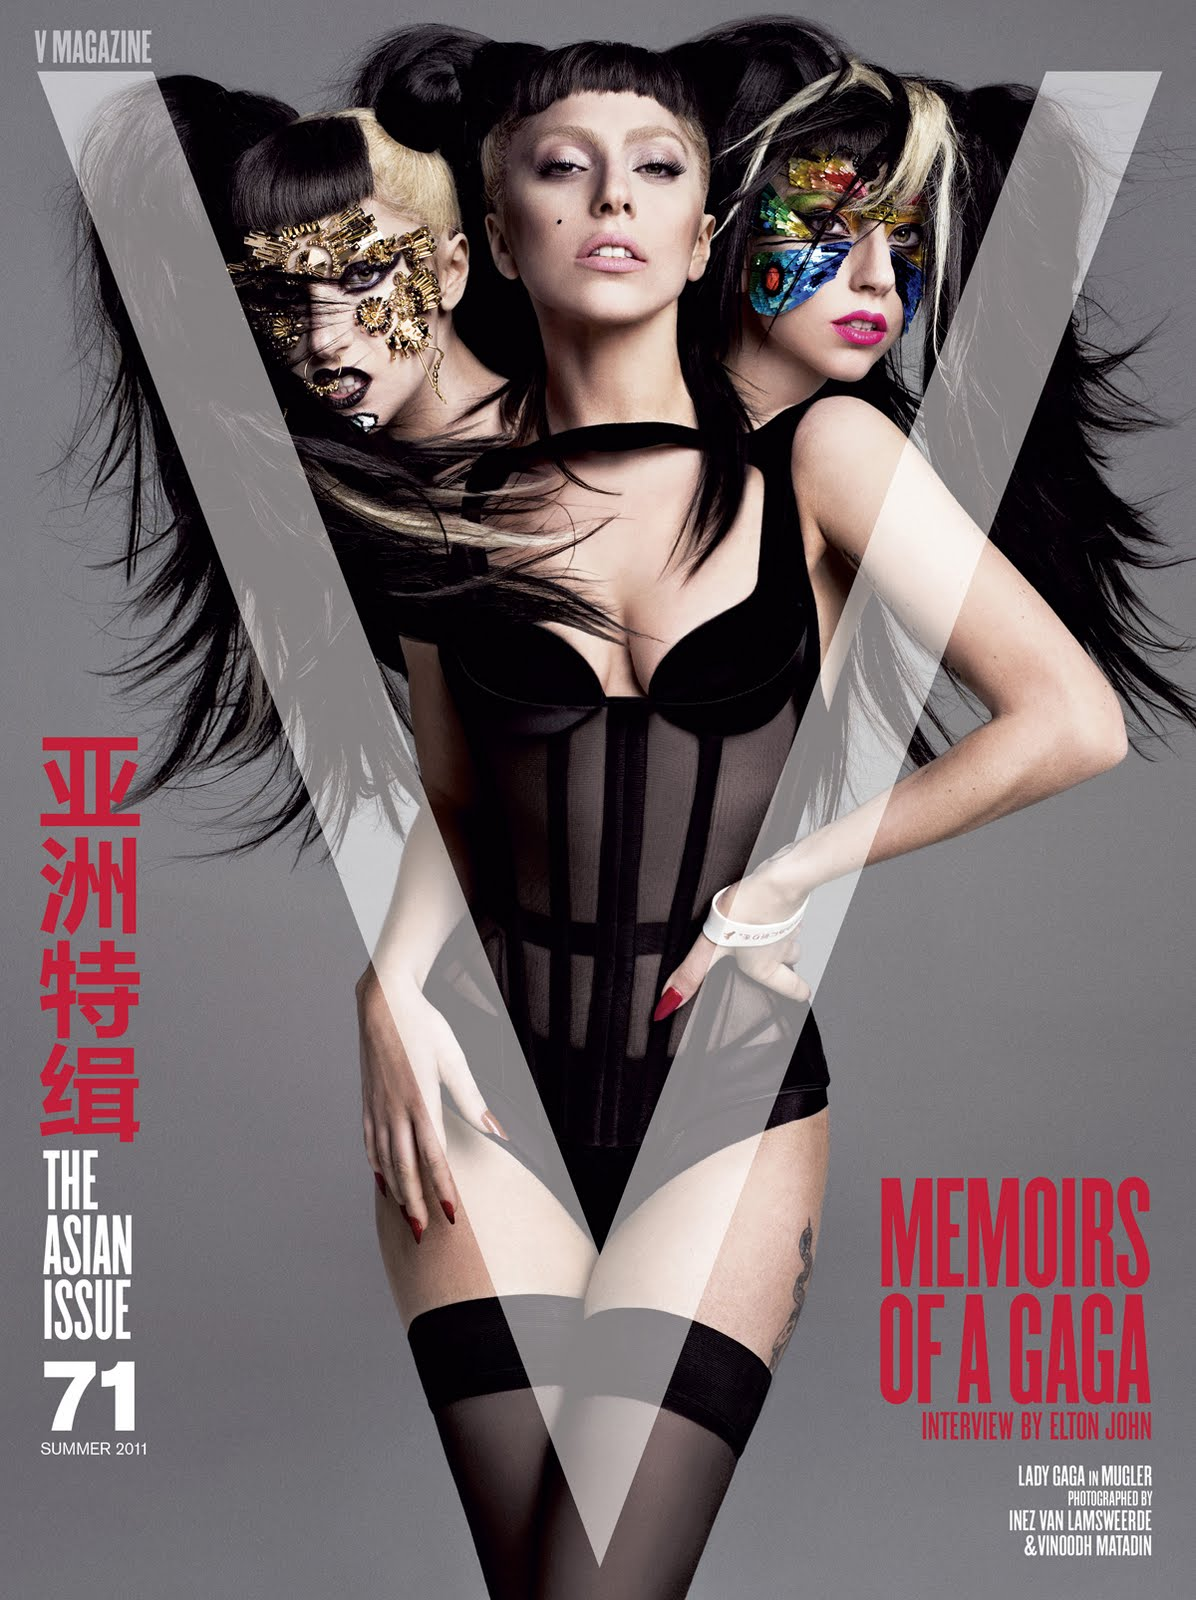 http://4.bp.blogspot.com/--N0k6UN0xr8/Tc2IrXw5K4I/AAAAAAAABBg/y7PbF2AmHLE/s1600/final-lady-gaga-v-magazine-cover-june-2011.jpeg